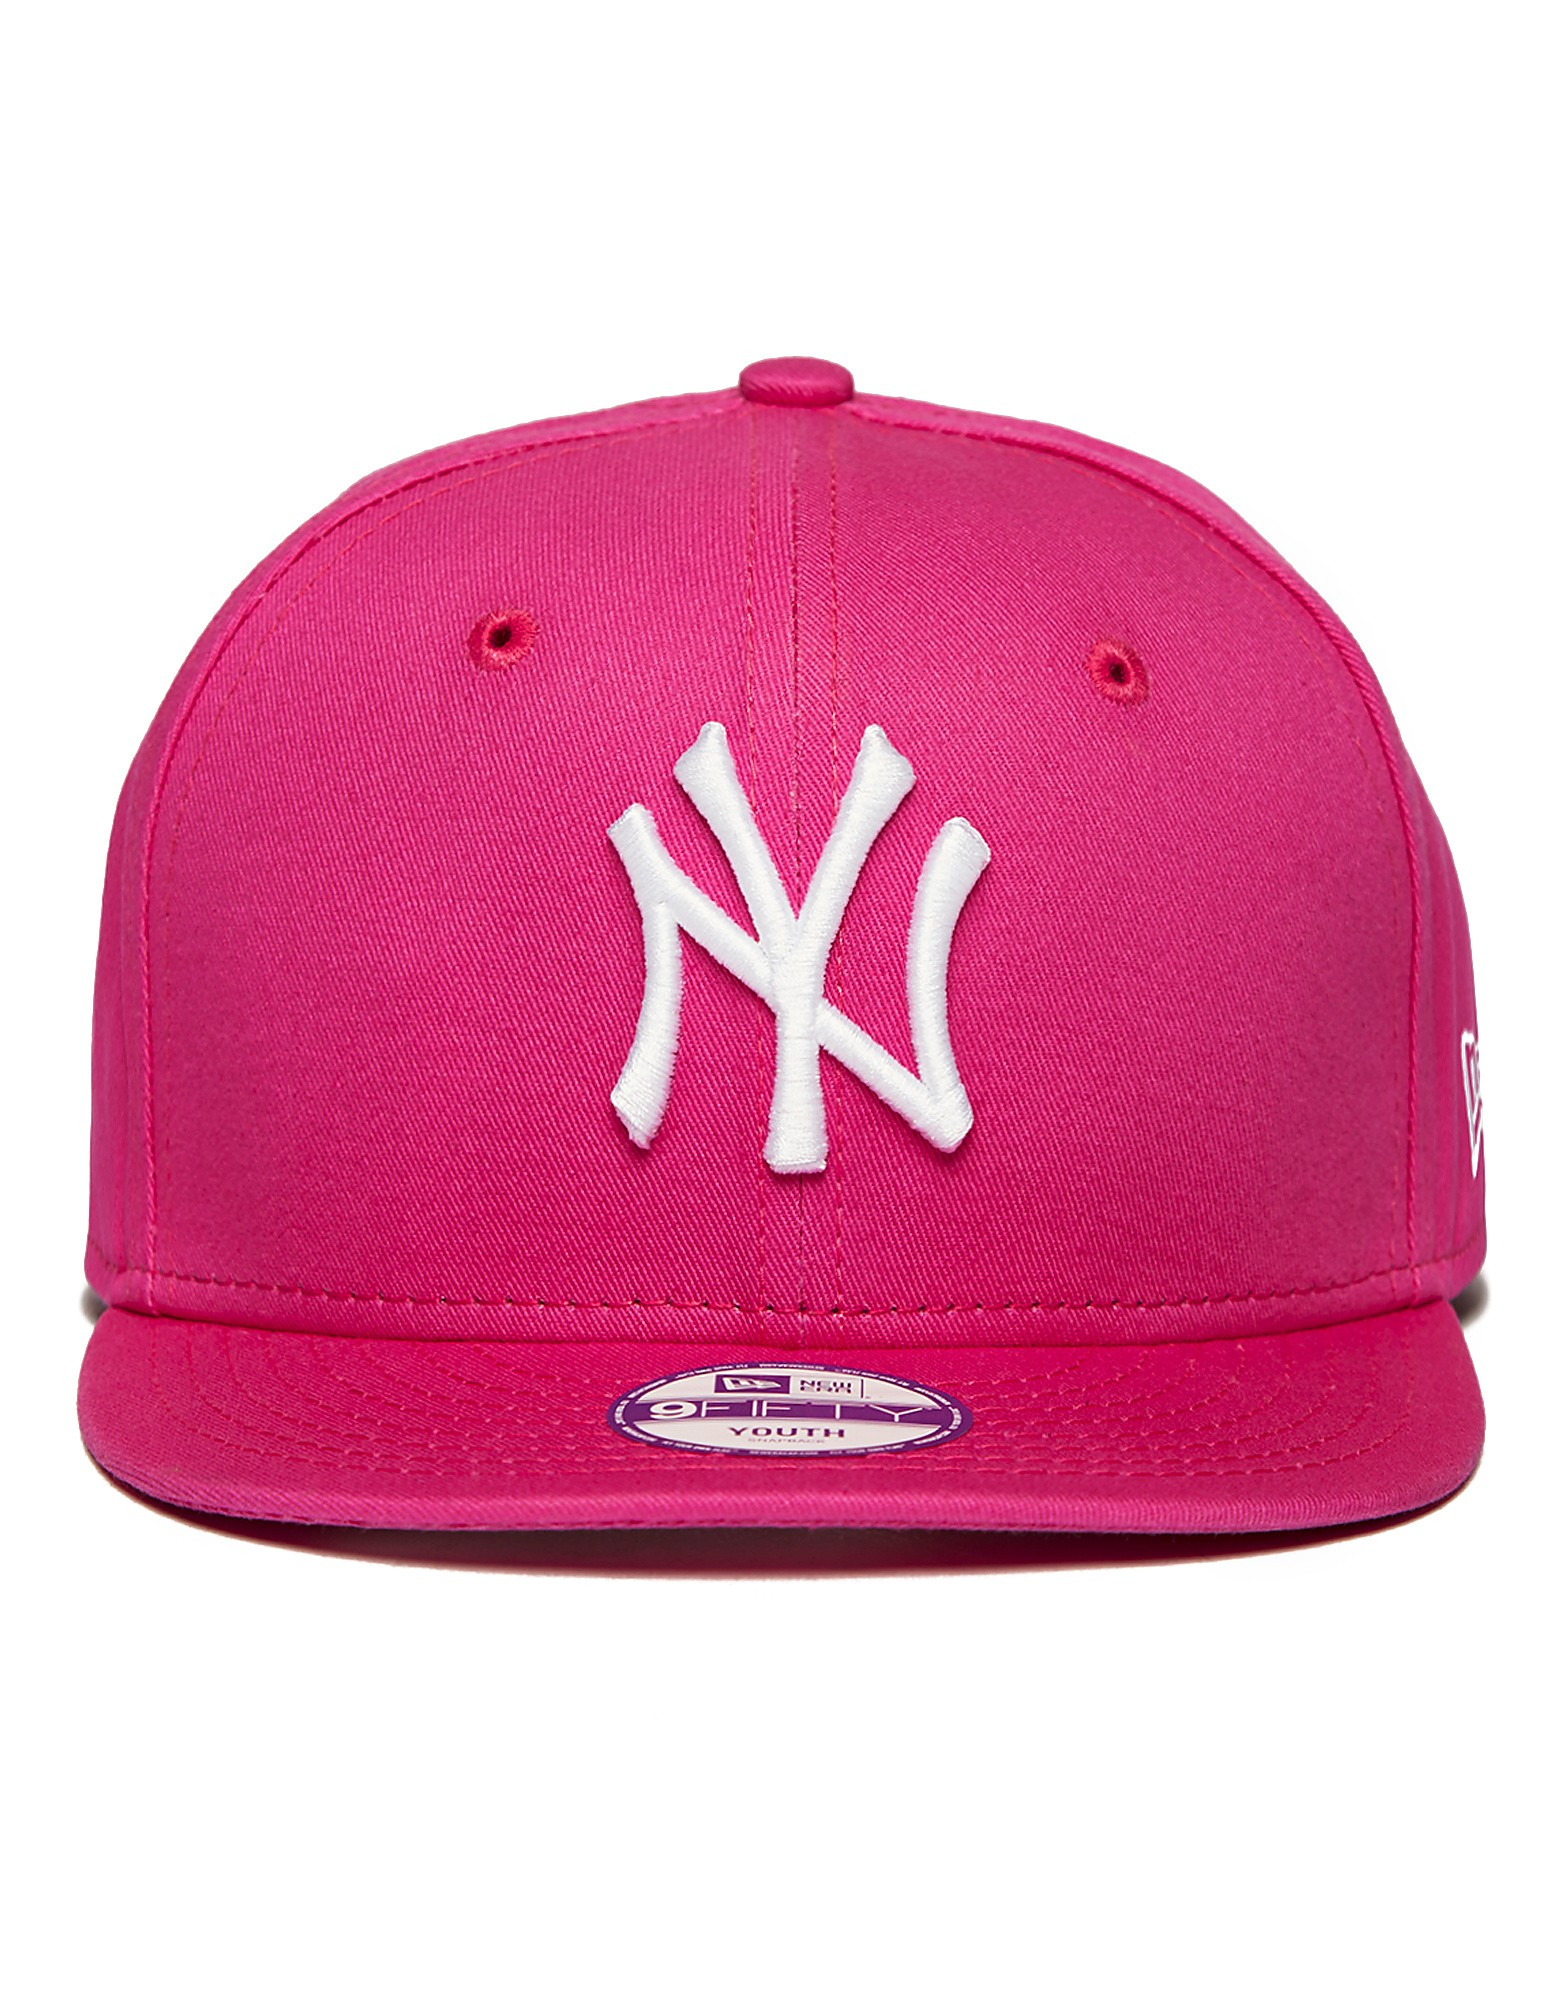 New Era MLB New York Yankees 9FIFTY pet voor tieners